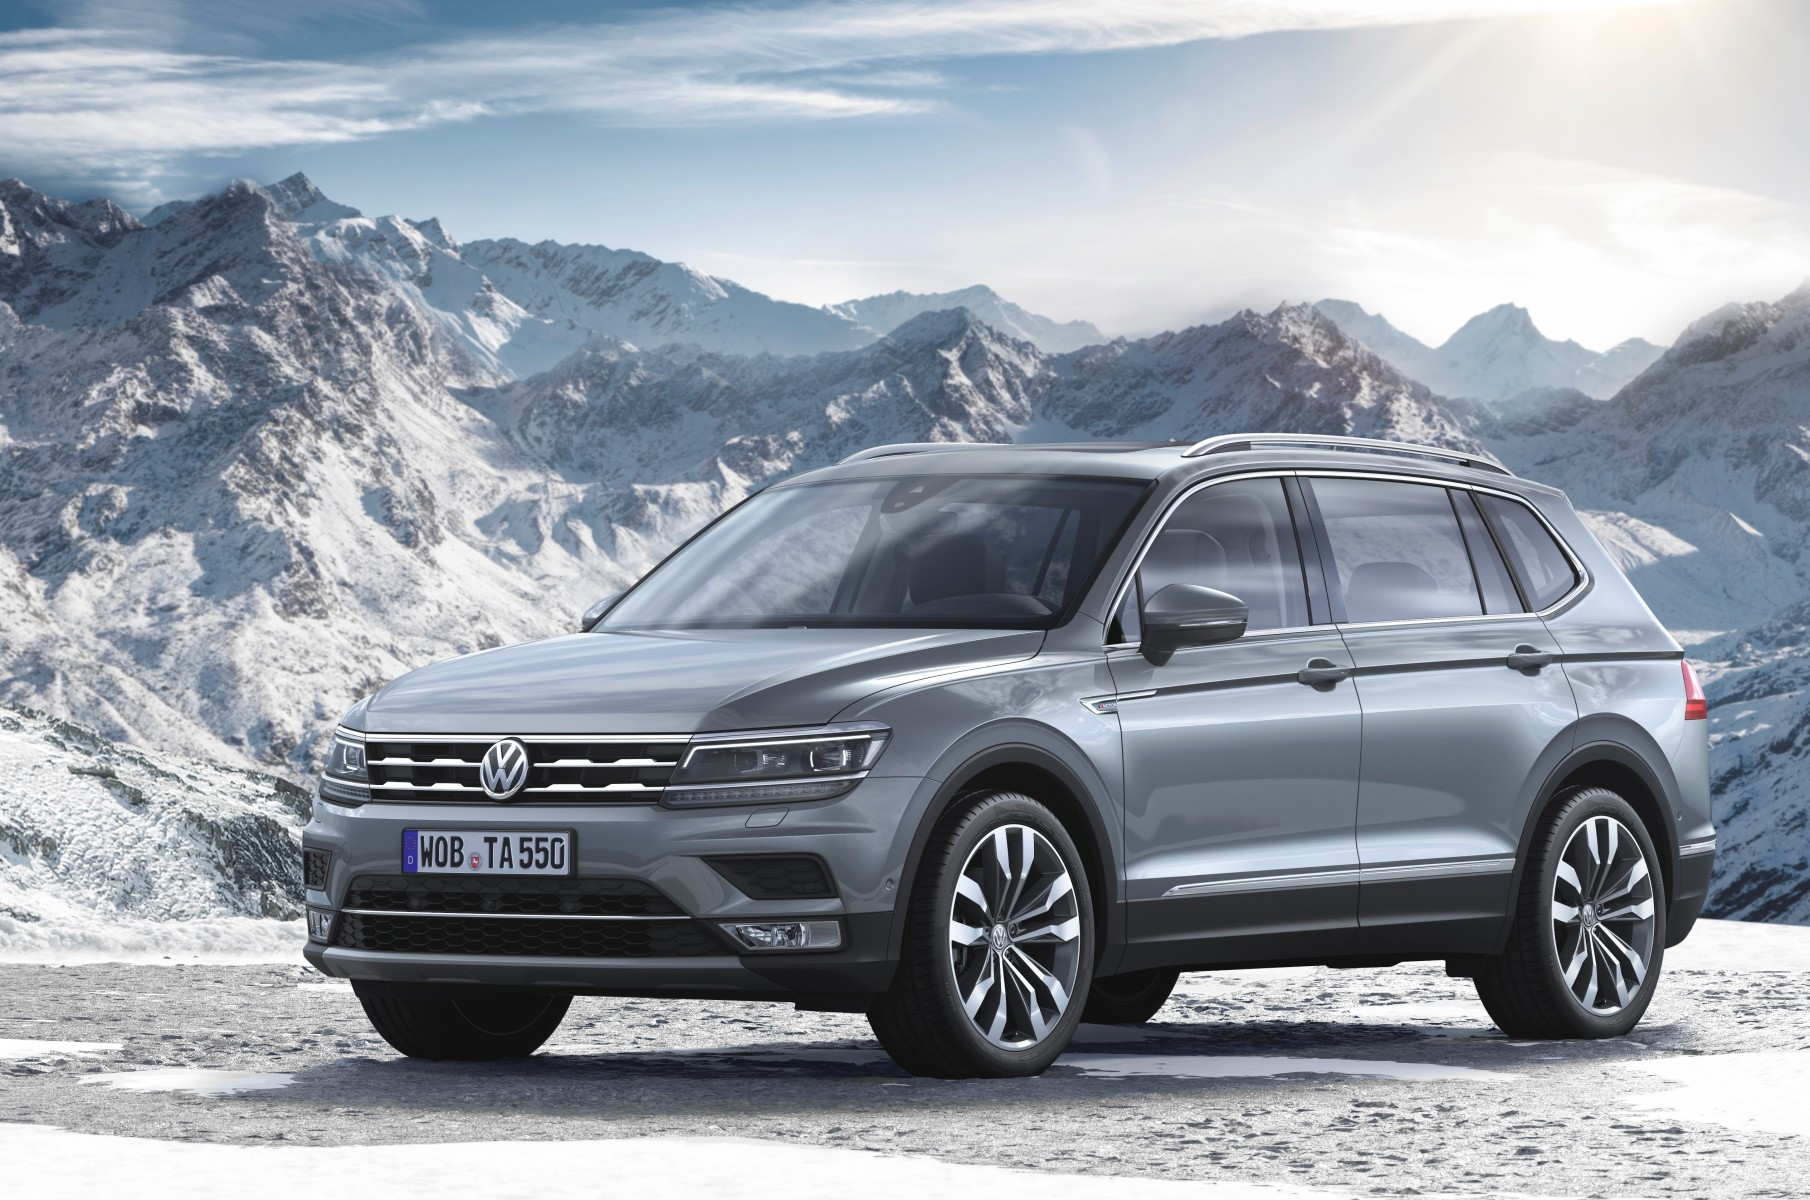 tiguan allspace de nieuwe zevenzits suv van volkswagen. Black Bedroom Furniture Sets. Home Design Ideas